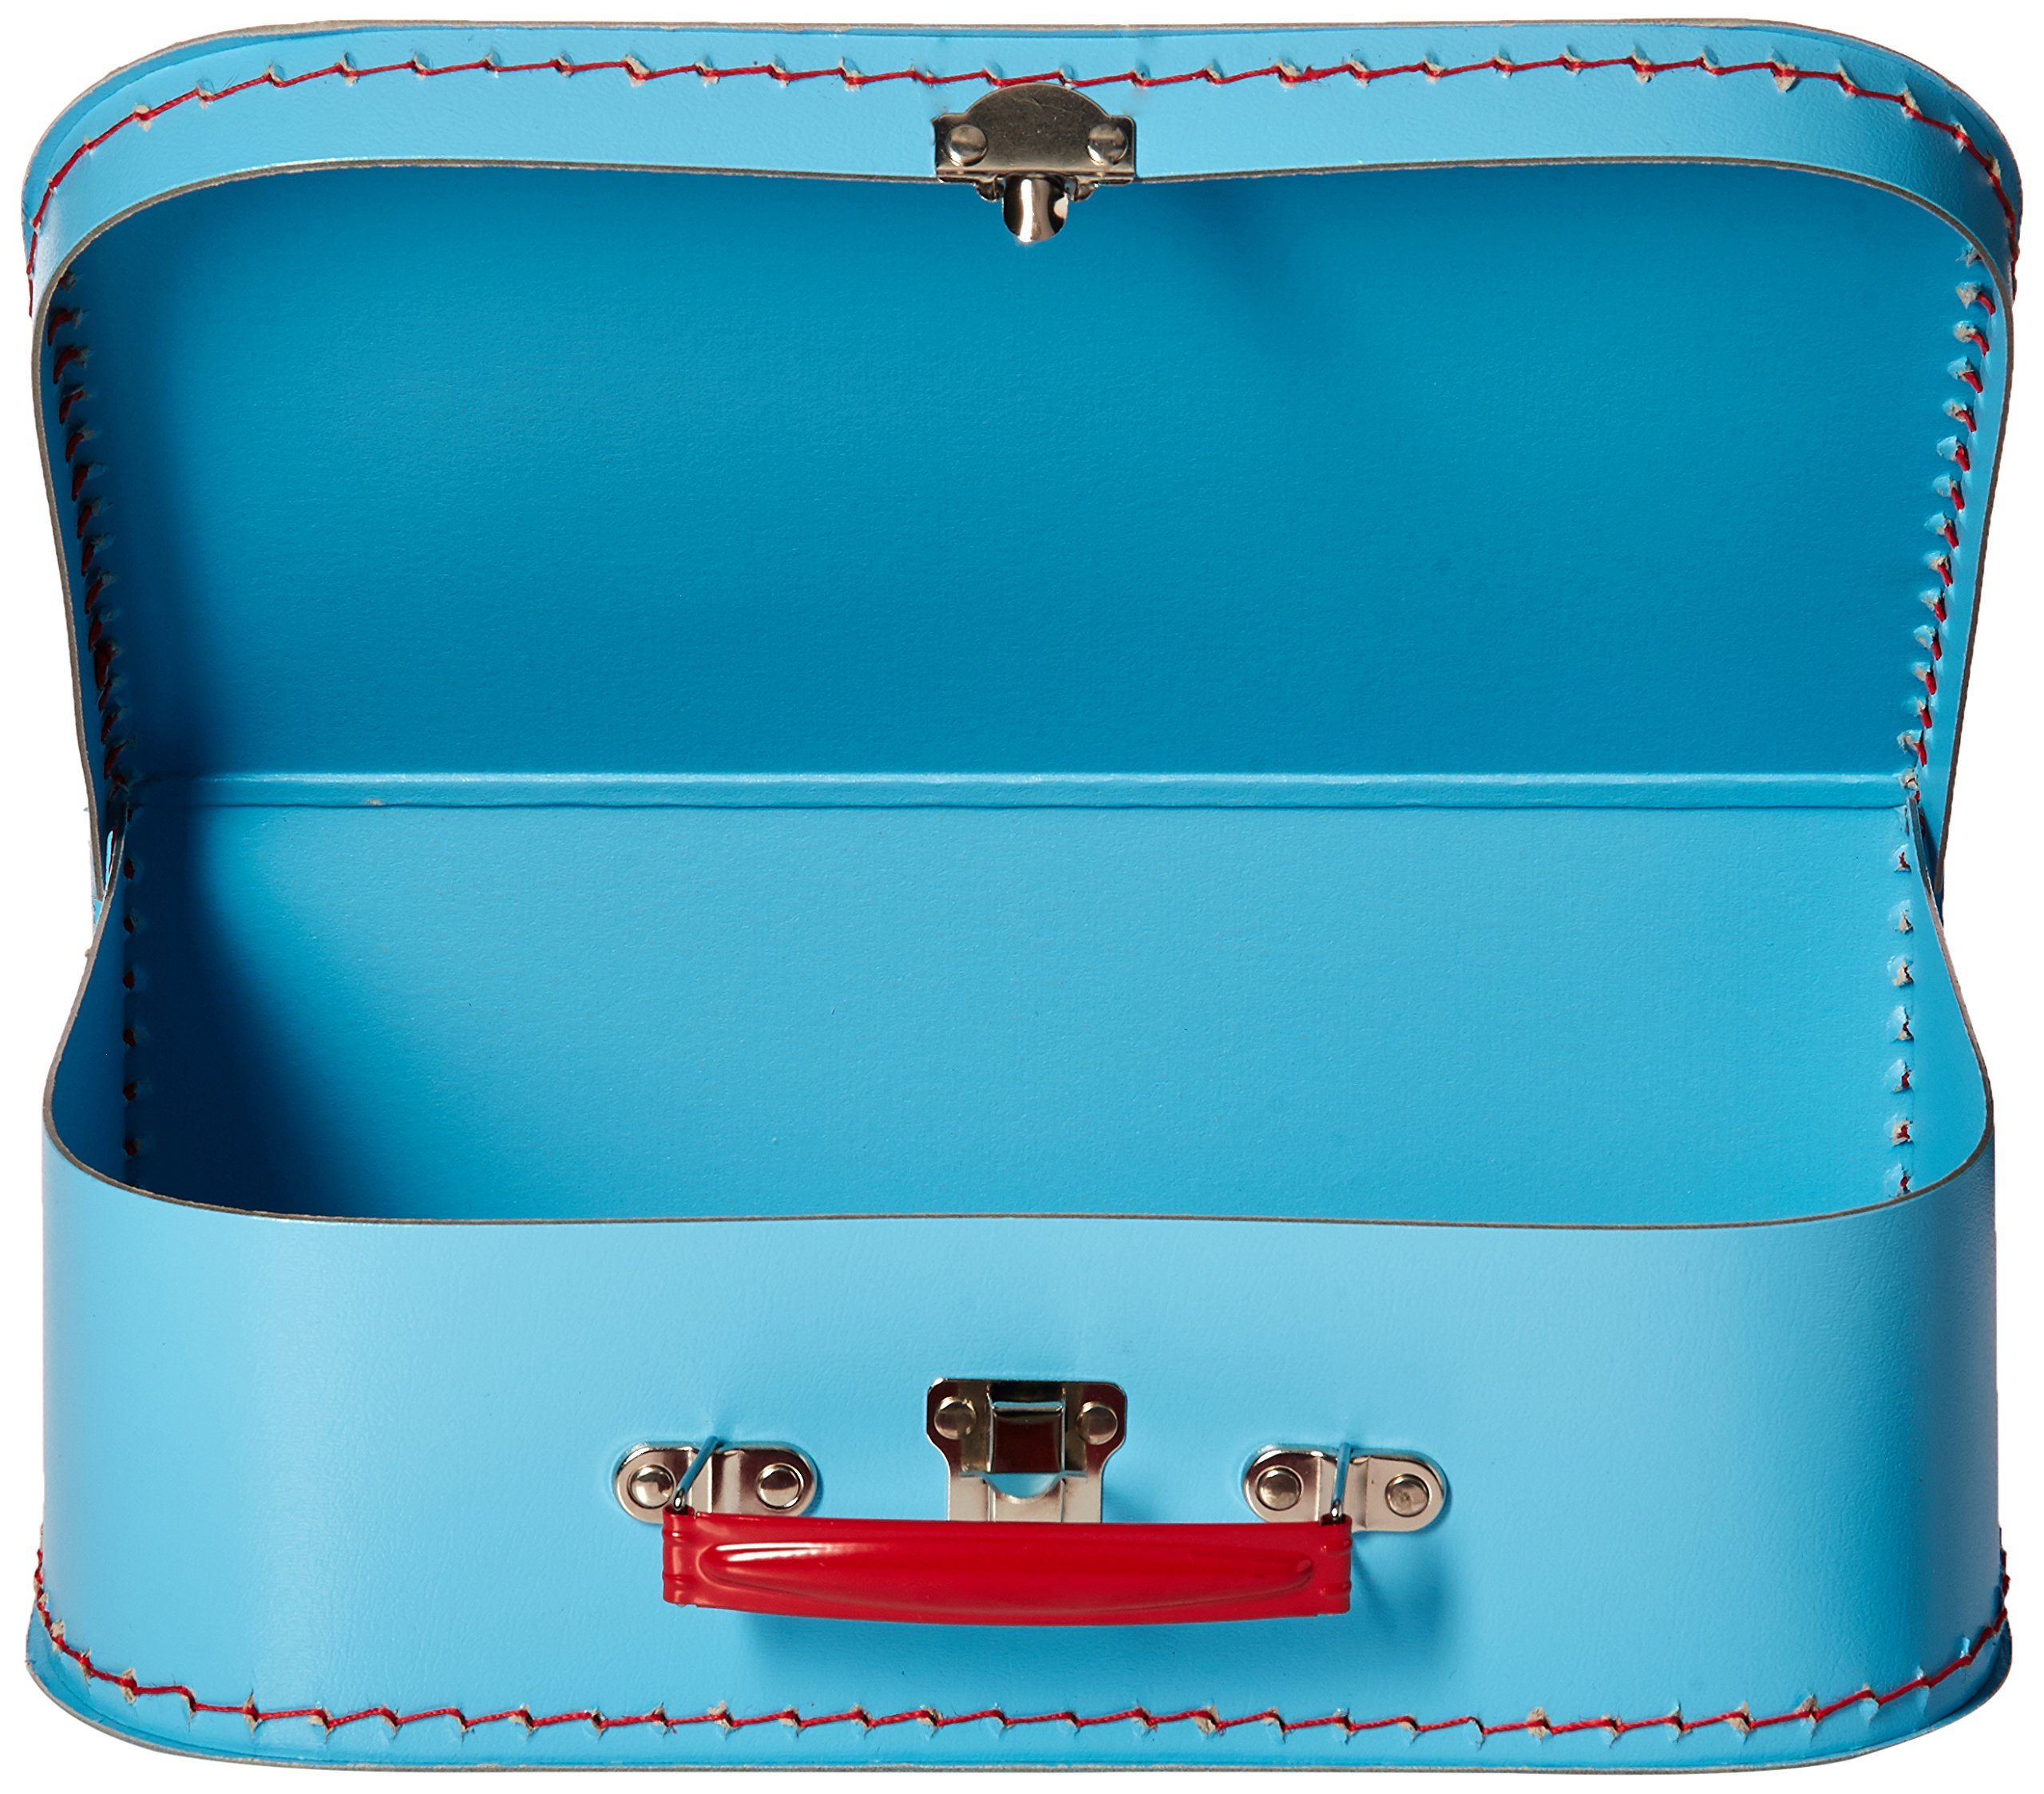 Cargo Cool Euro Suitcases, Soft Blue, Set of 3 by cargo (Image #6)